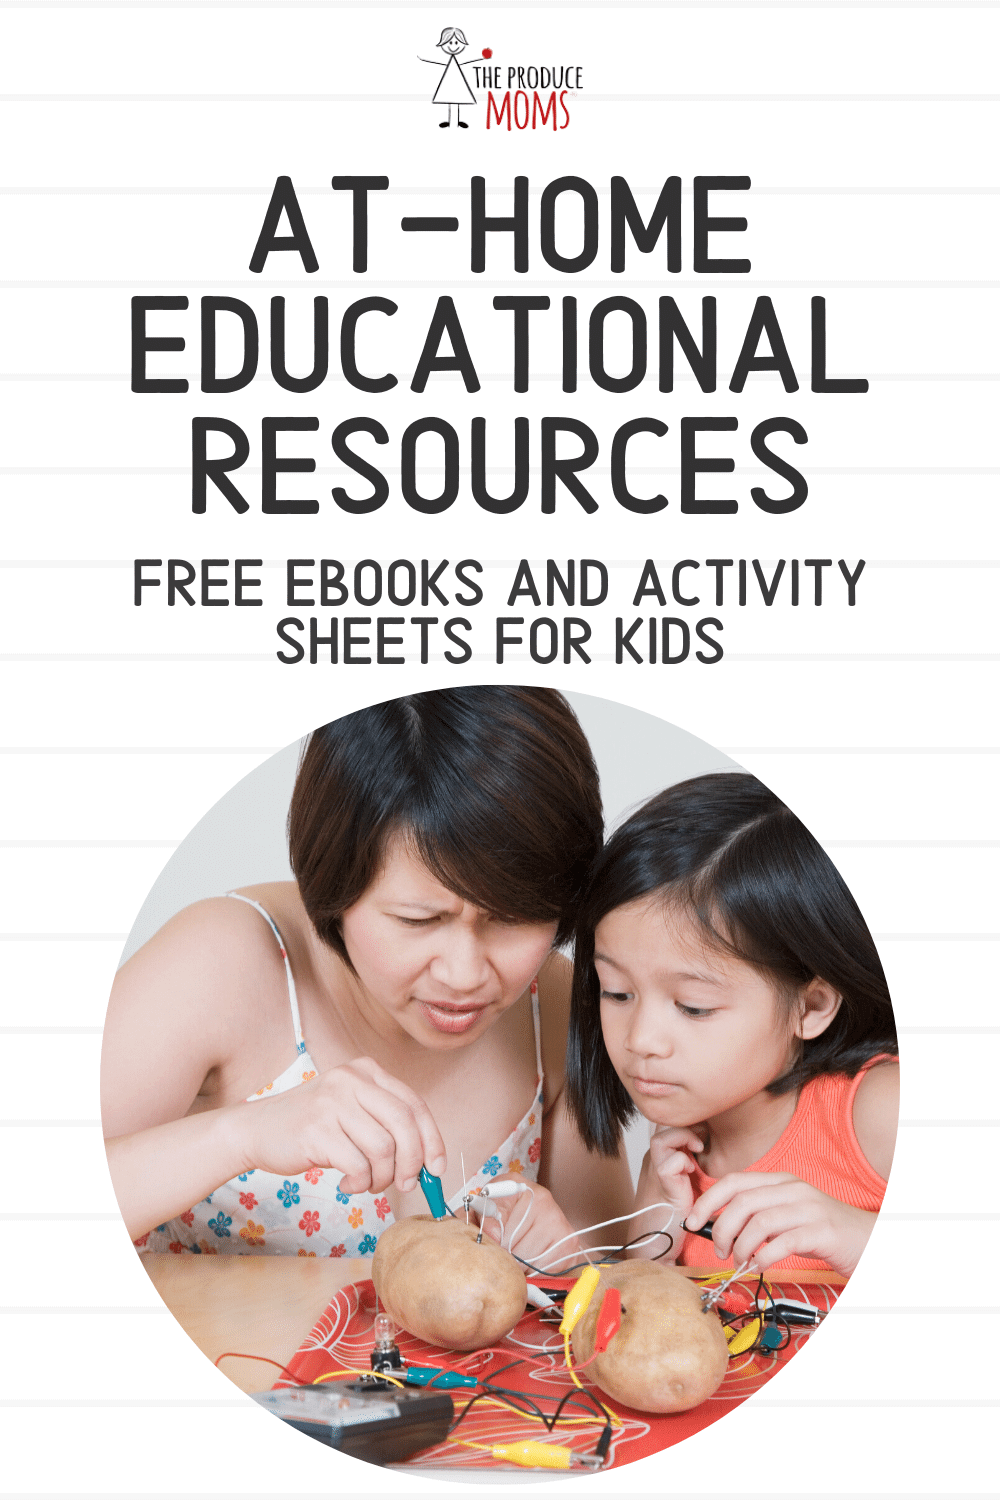 At-Home Educational Resources: Free eBooks and Activity Sheets for Kids